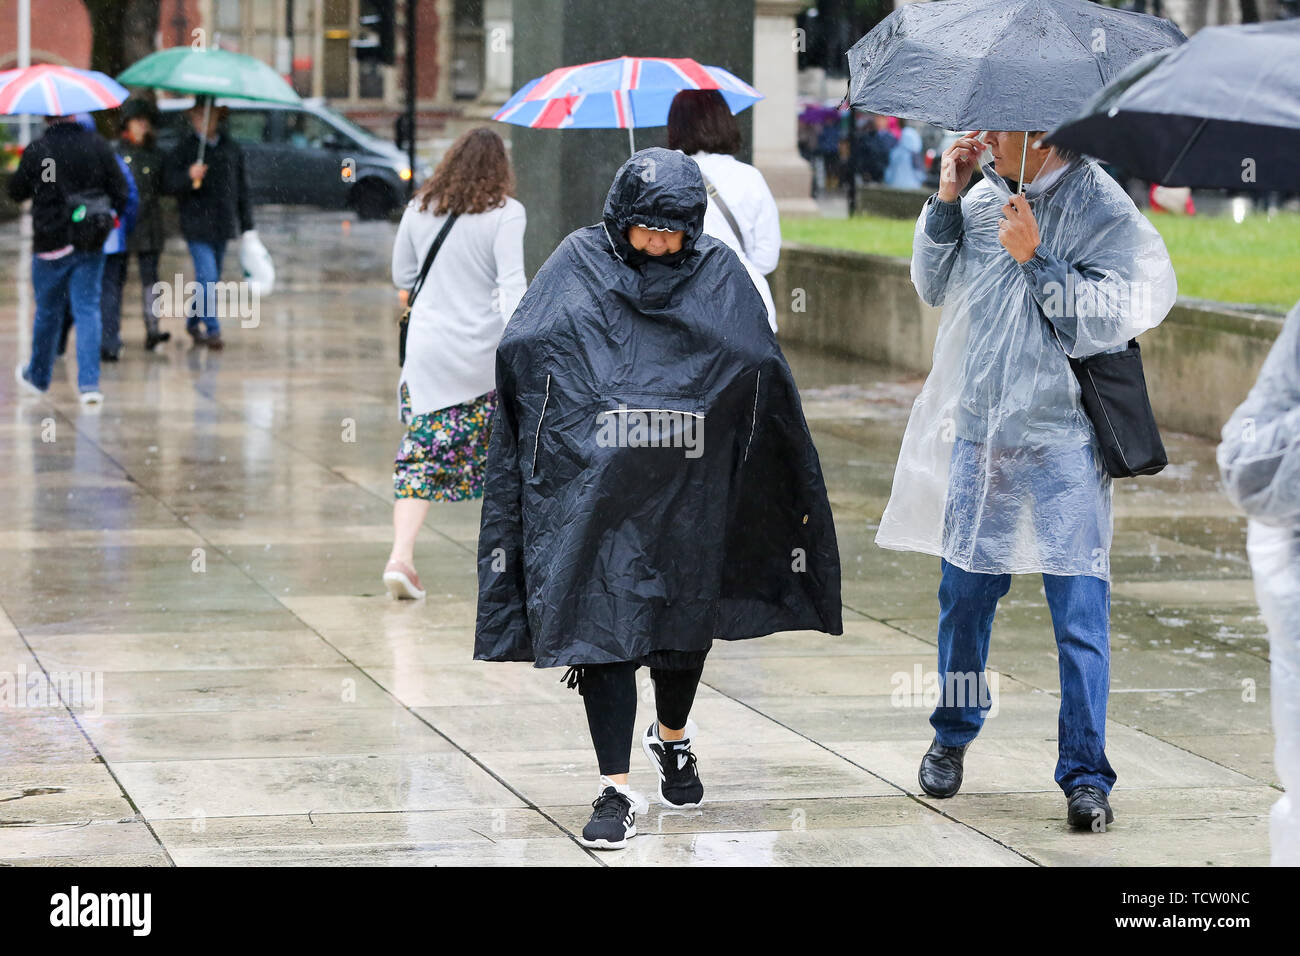 Westminster, London, UK 10 June 2019 - Tourists wearing rain ponchos in Westminster as rain falls in the capital. The Met Office has issued an amber warning for more rain, covering London and parts of southeast England this week.  Credit: Dinendra Haria/Alamy Live News - Stock Image